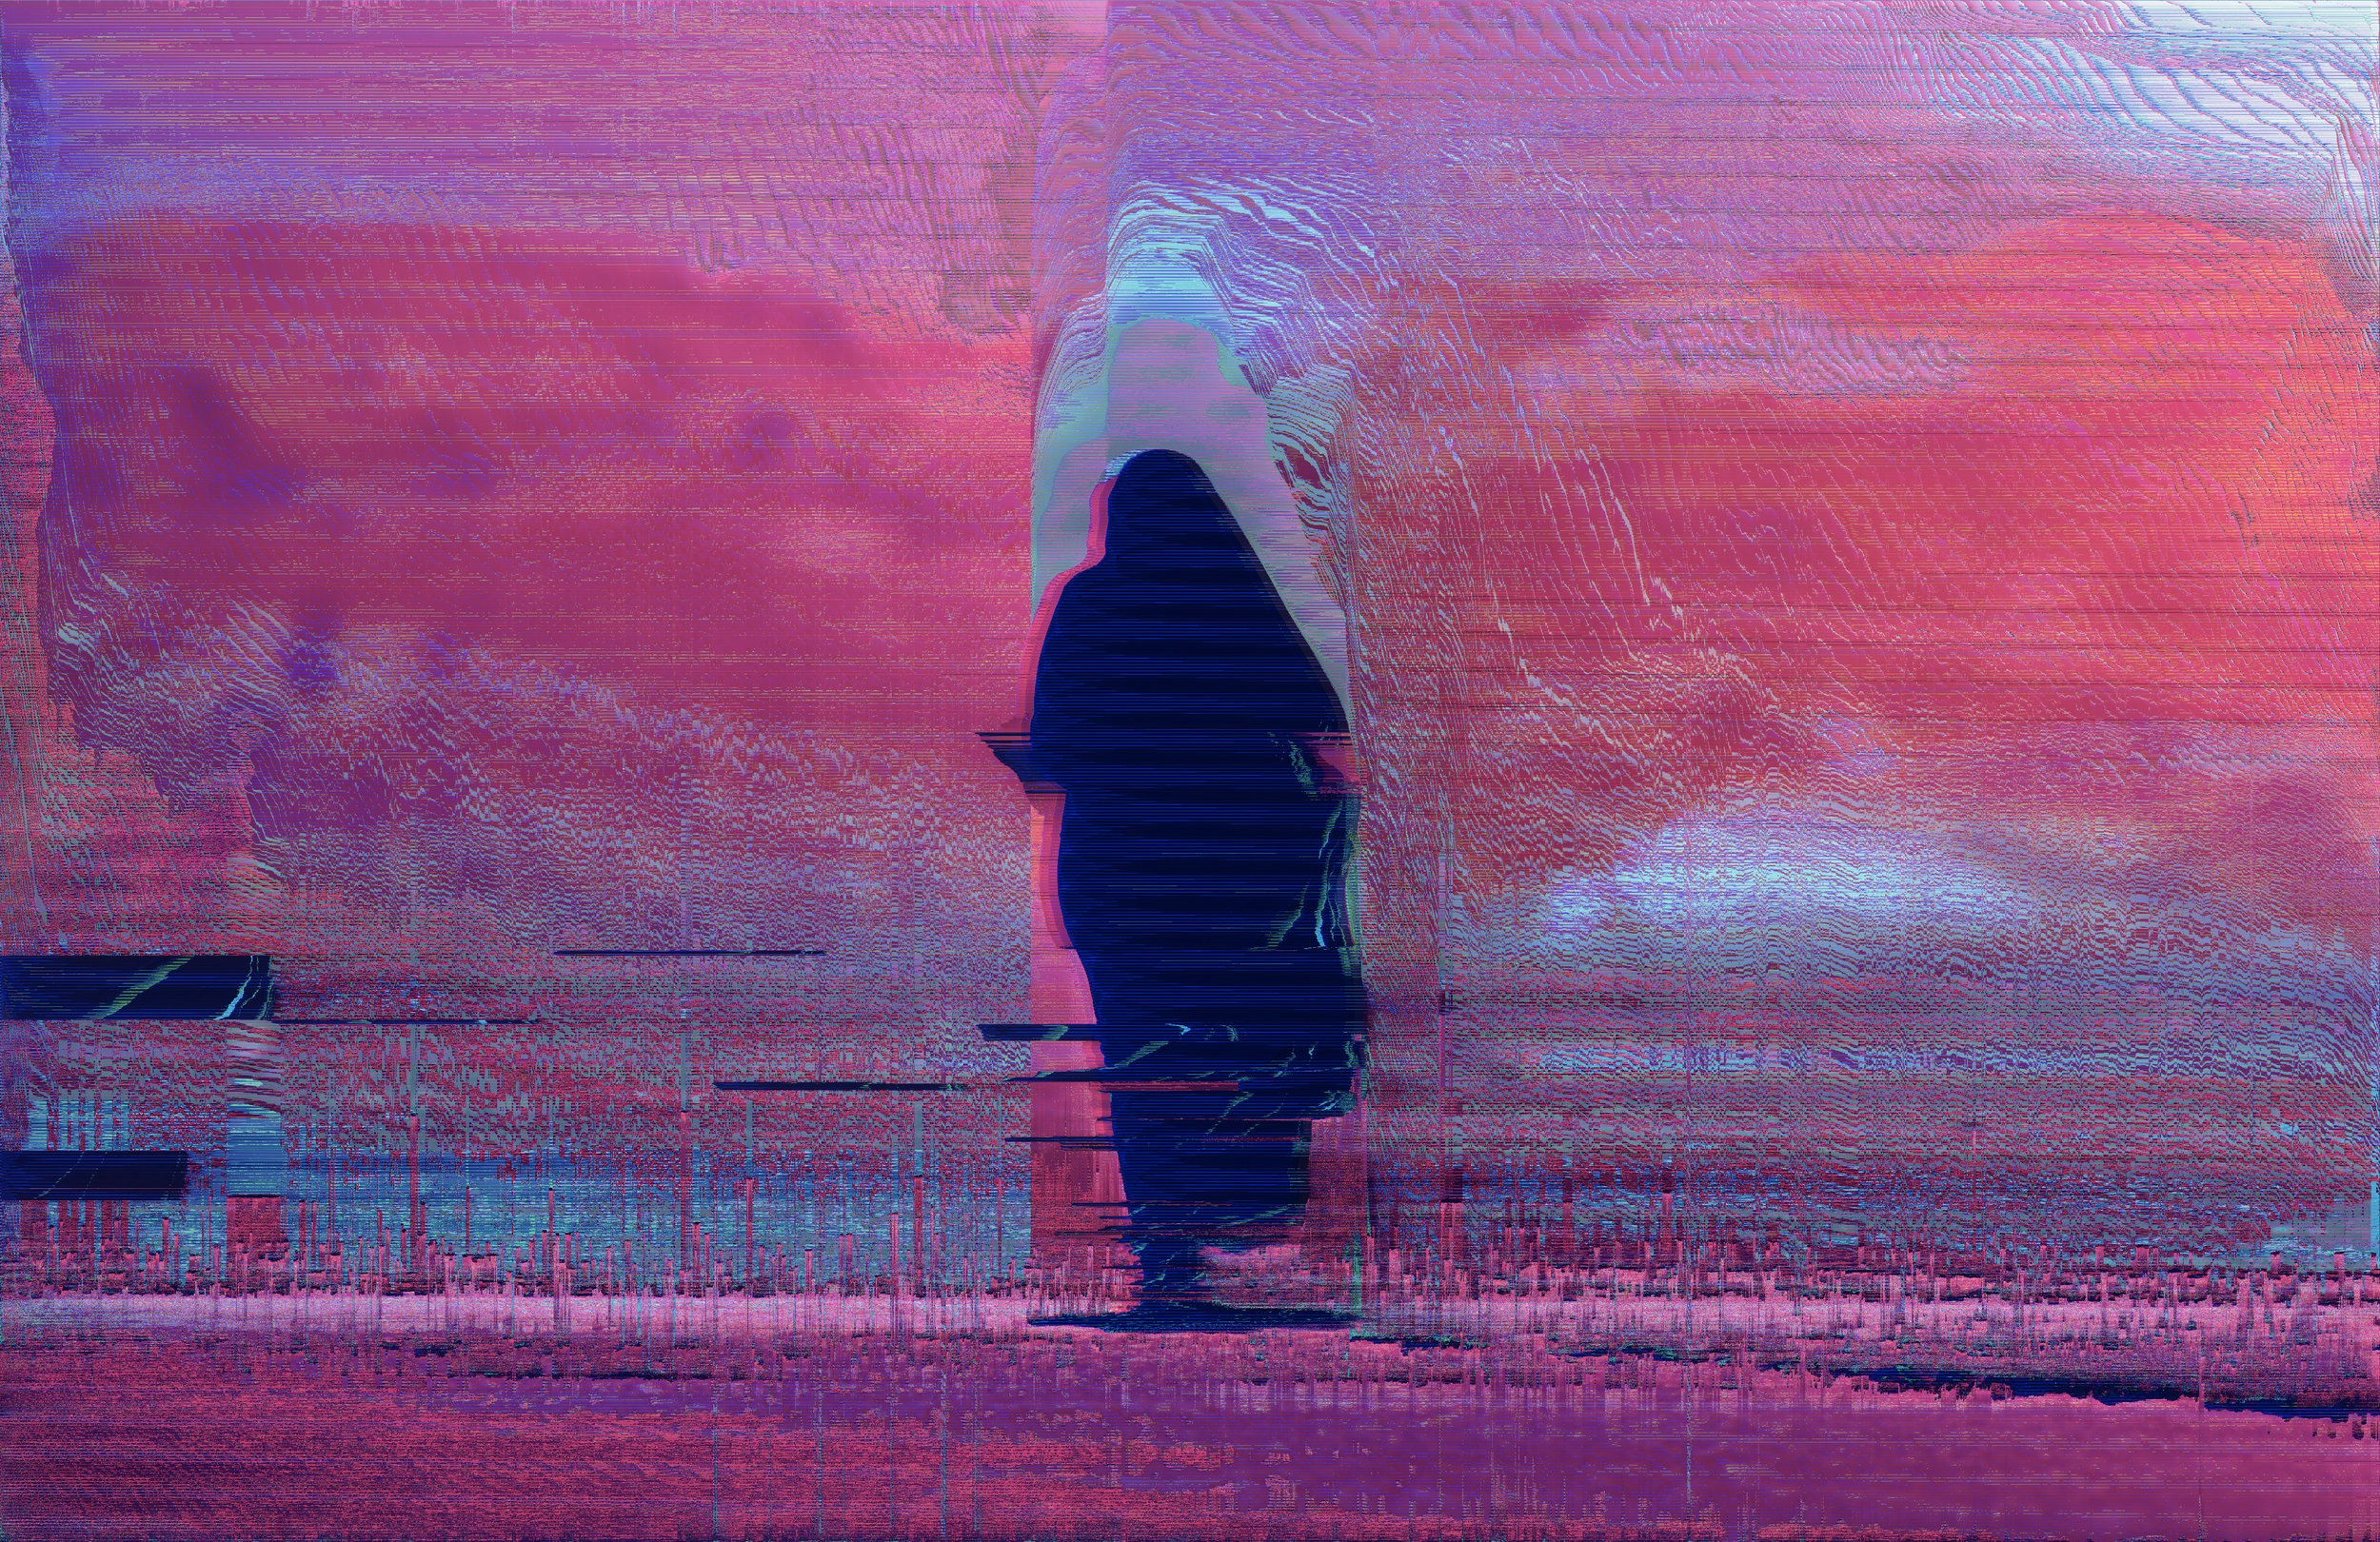 anaglych_29